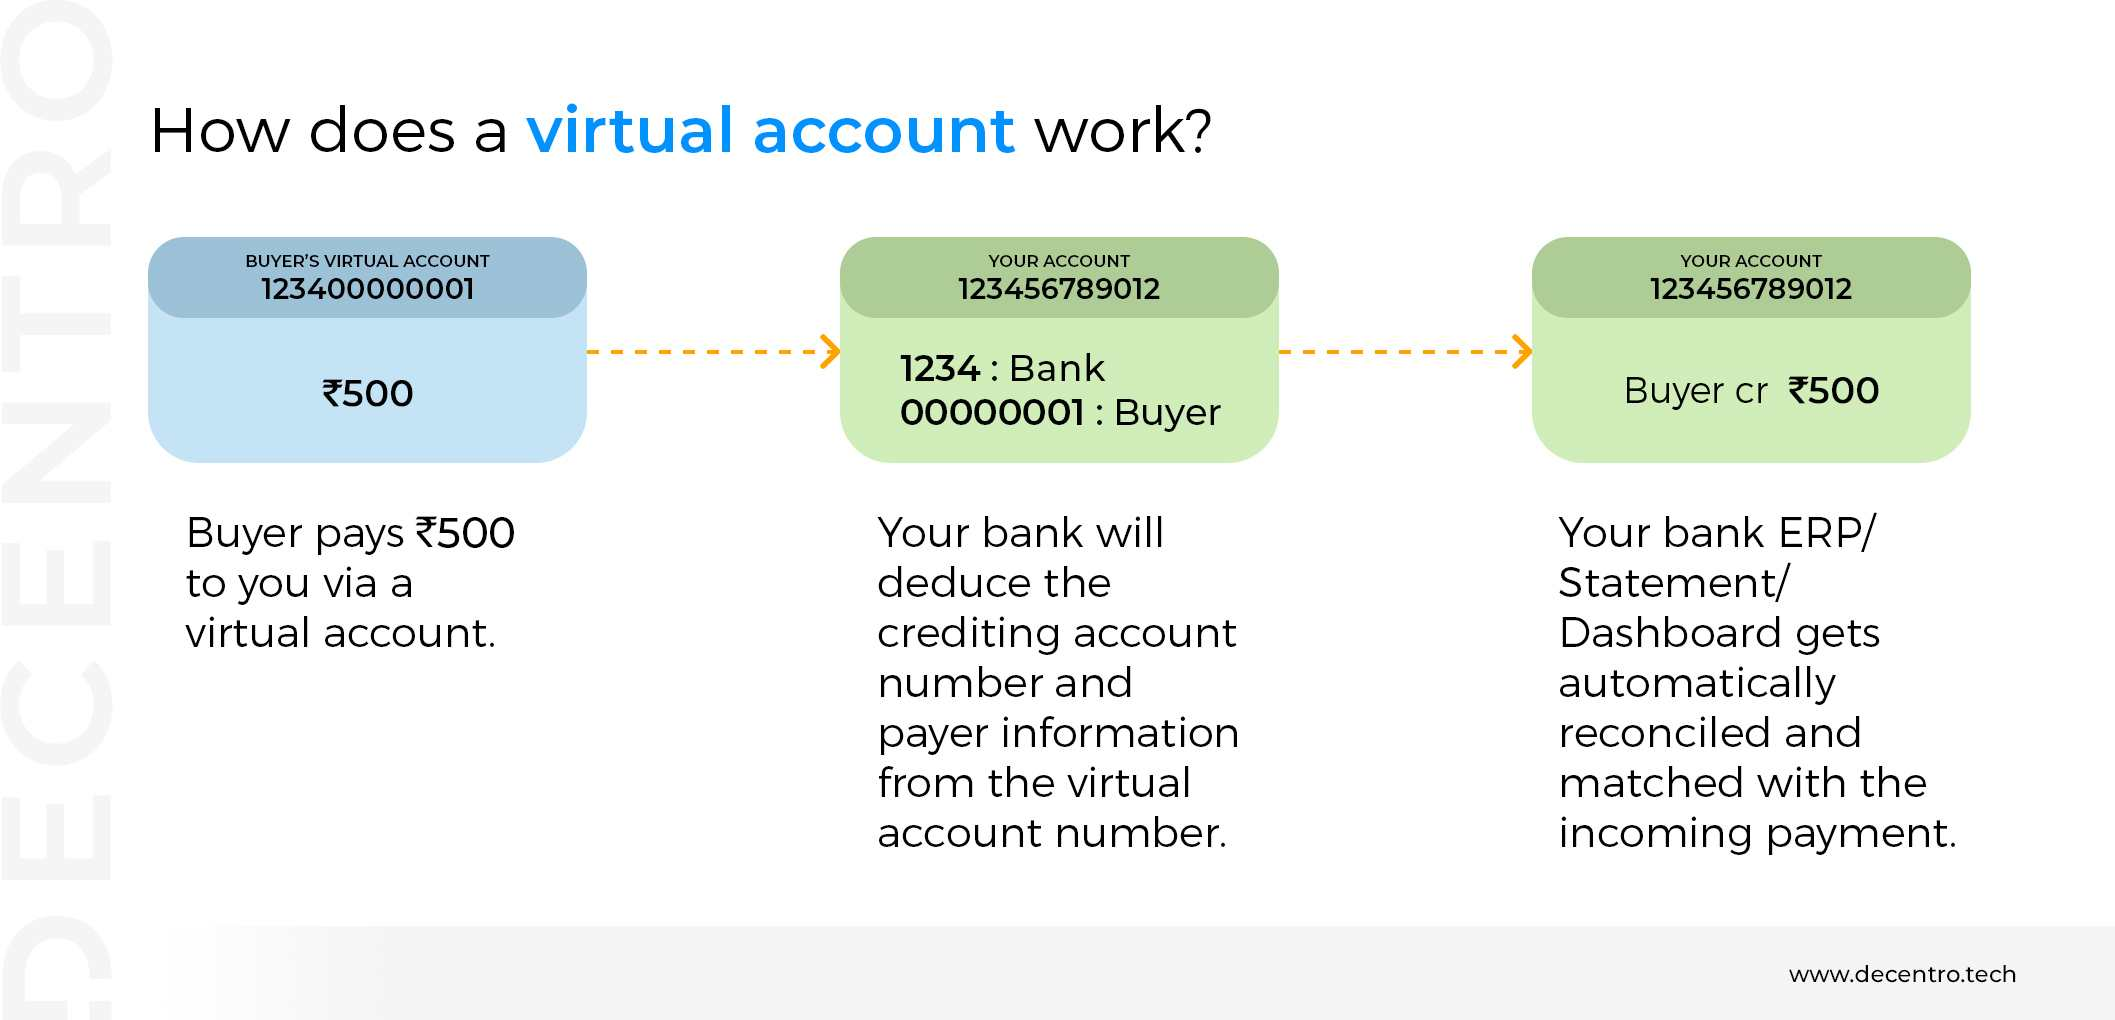 The working of a virtual account explained as a diagram.